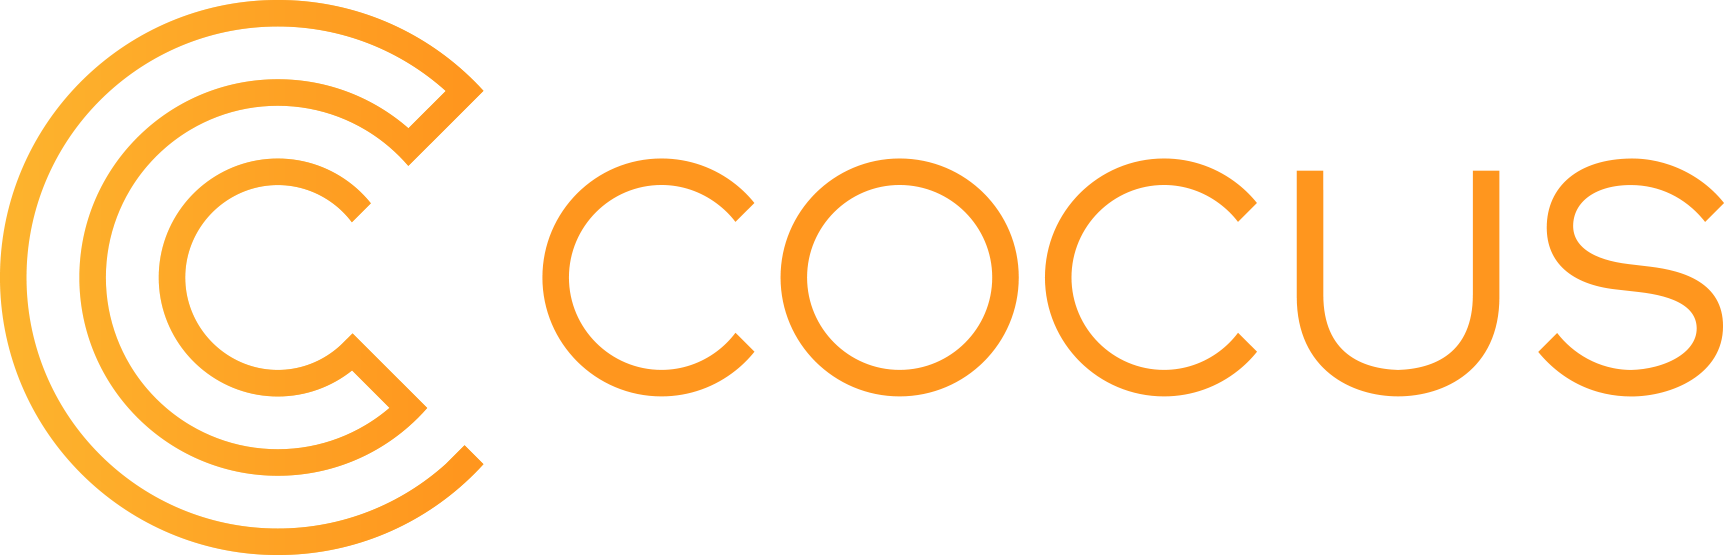 (Senior) Experte (m/w/d) Cloud Infrastructure - Job Düsseldorf, Eschborn, Homeoffice - Jobs bei uns | COCUS AG - Application form